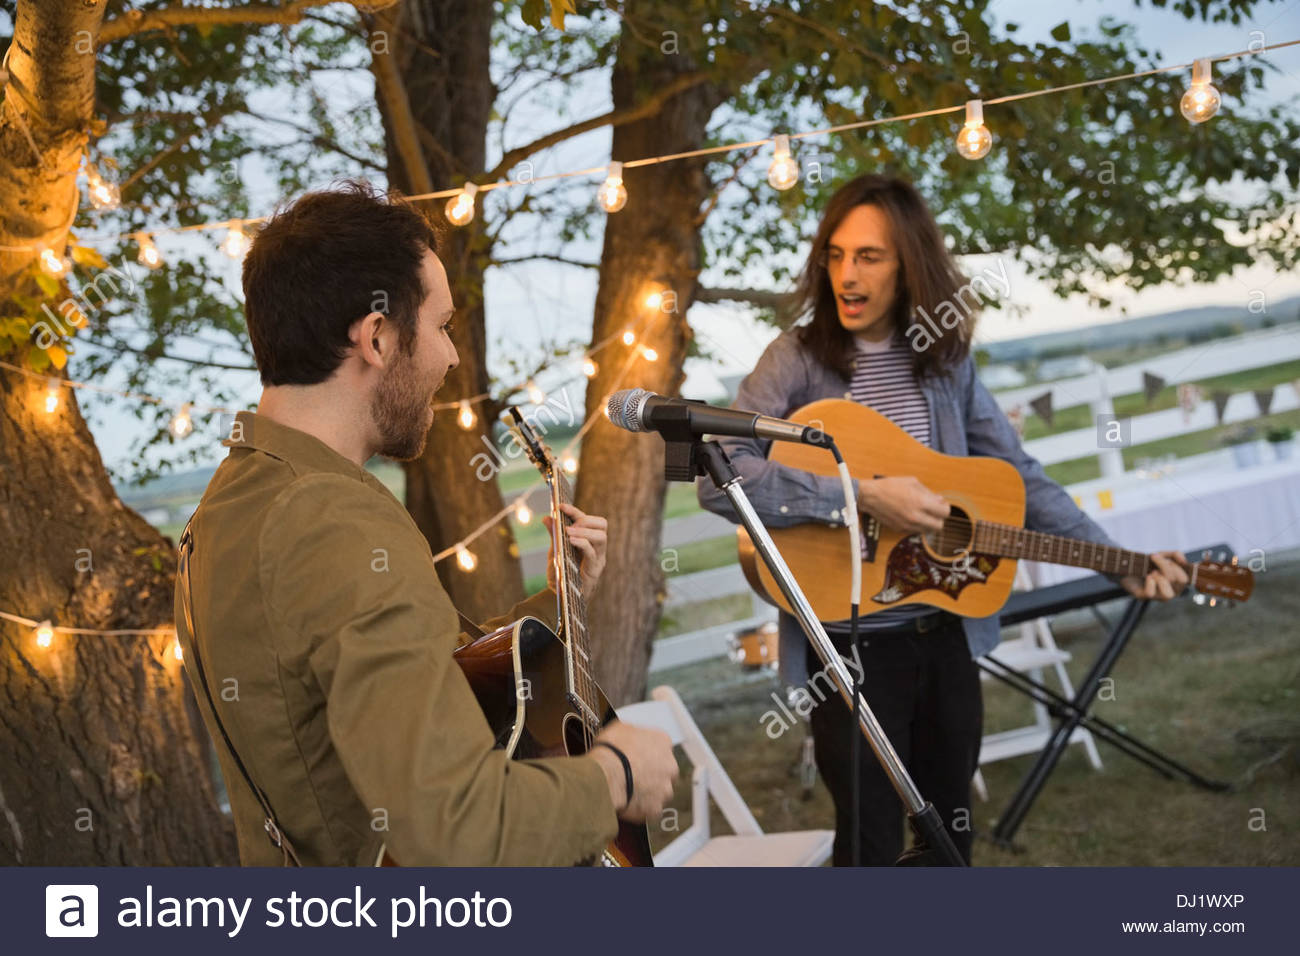 Men singing while playing guitars during outdoor party - Stock Image